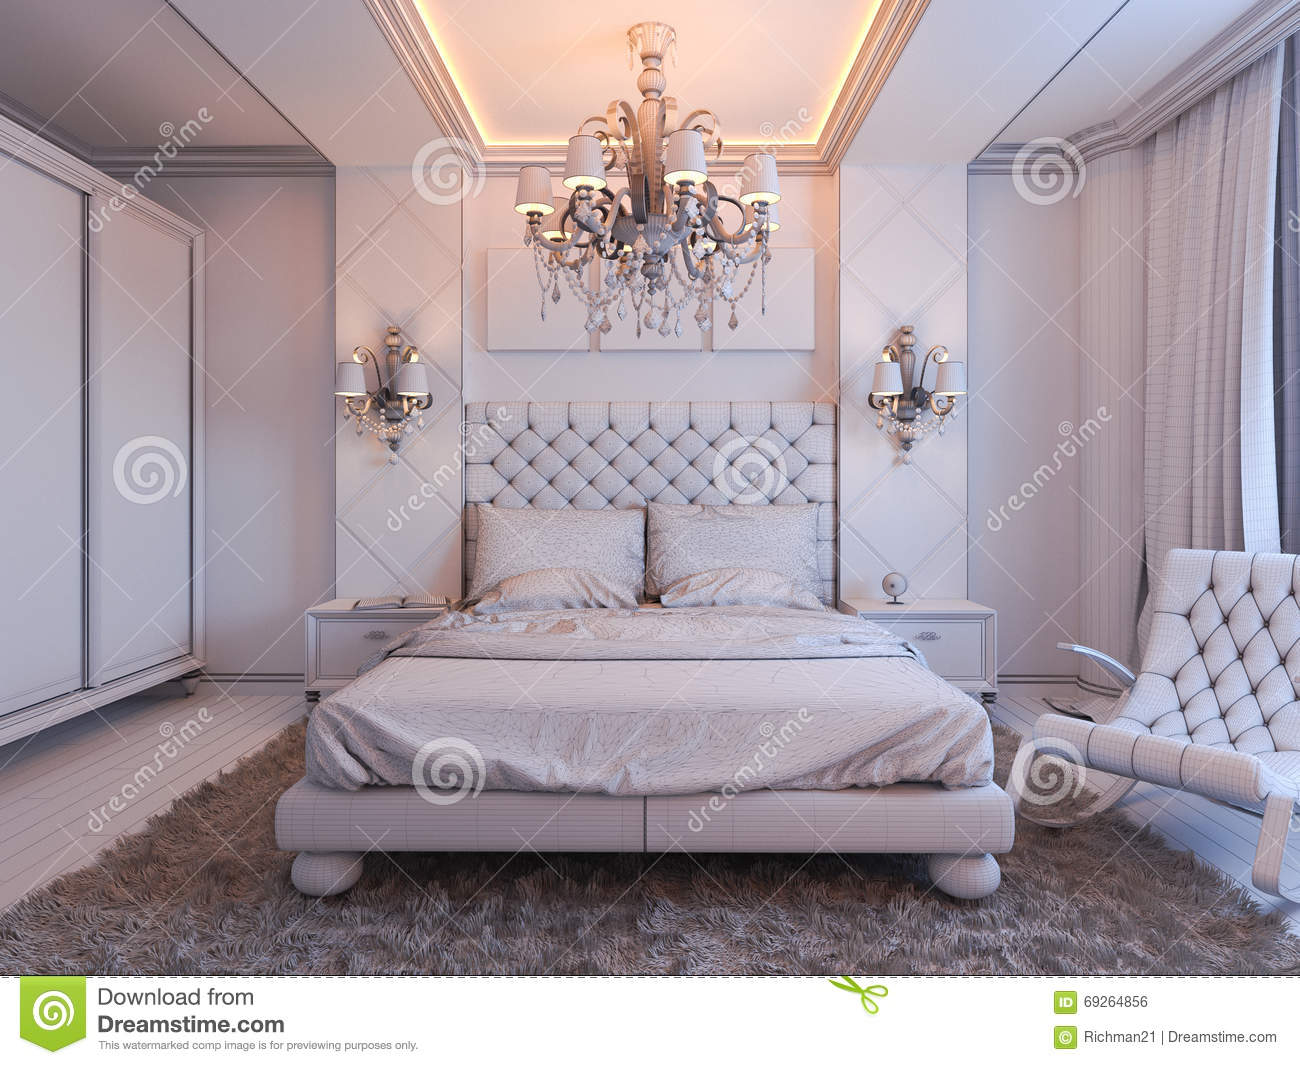 3d Render Of Bedroom Interior Design In A Modern Classic ...